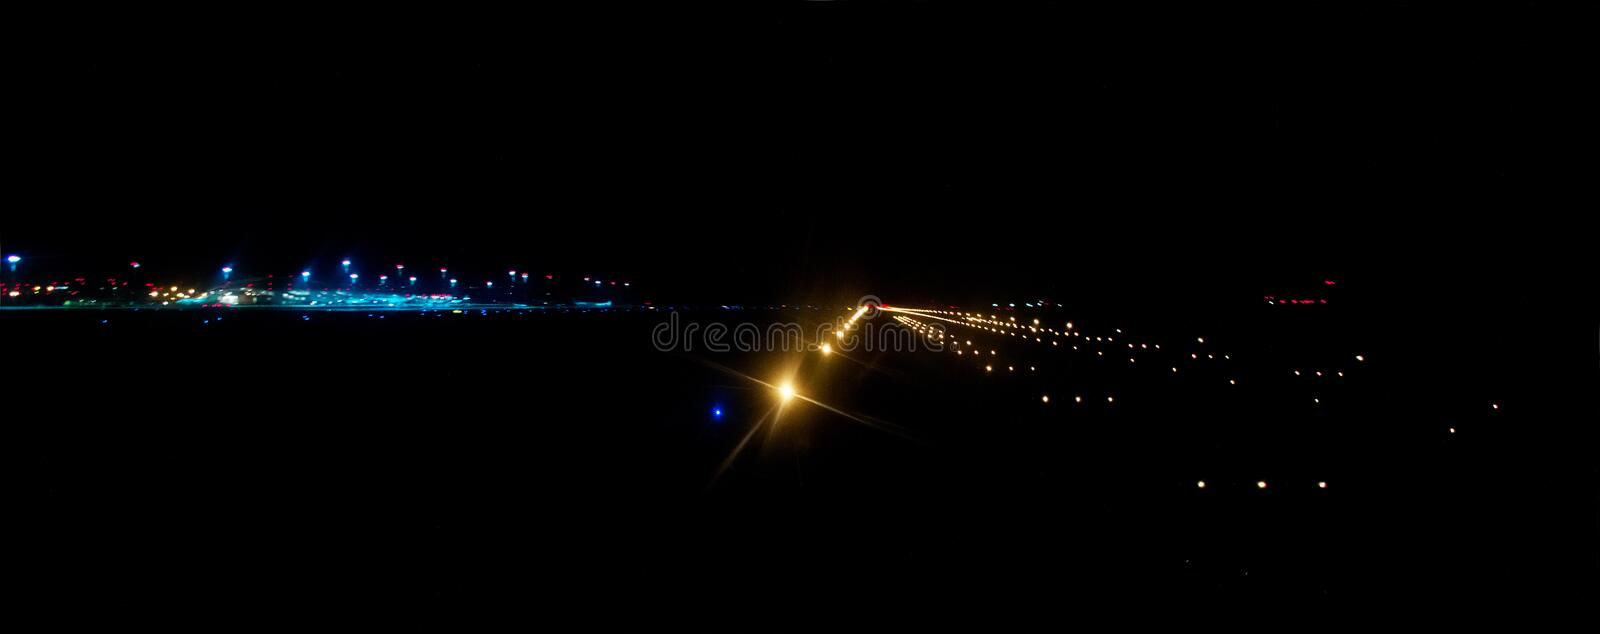 Airport runway illuminated by bright landing lights at night. stock photo